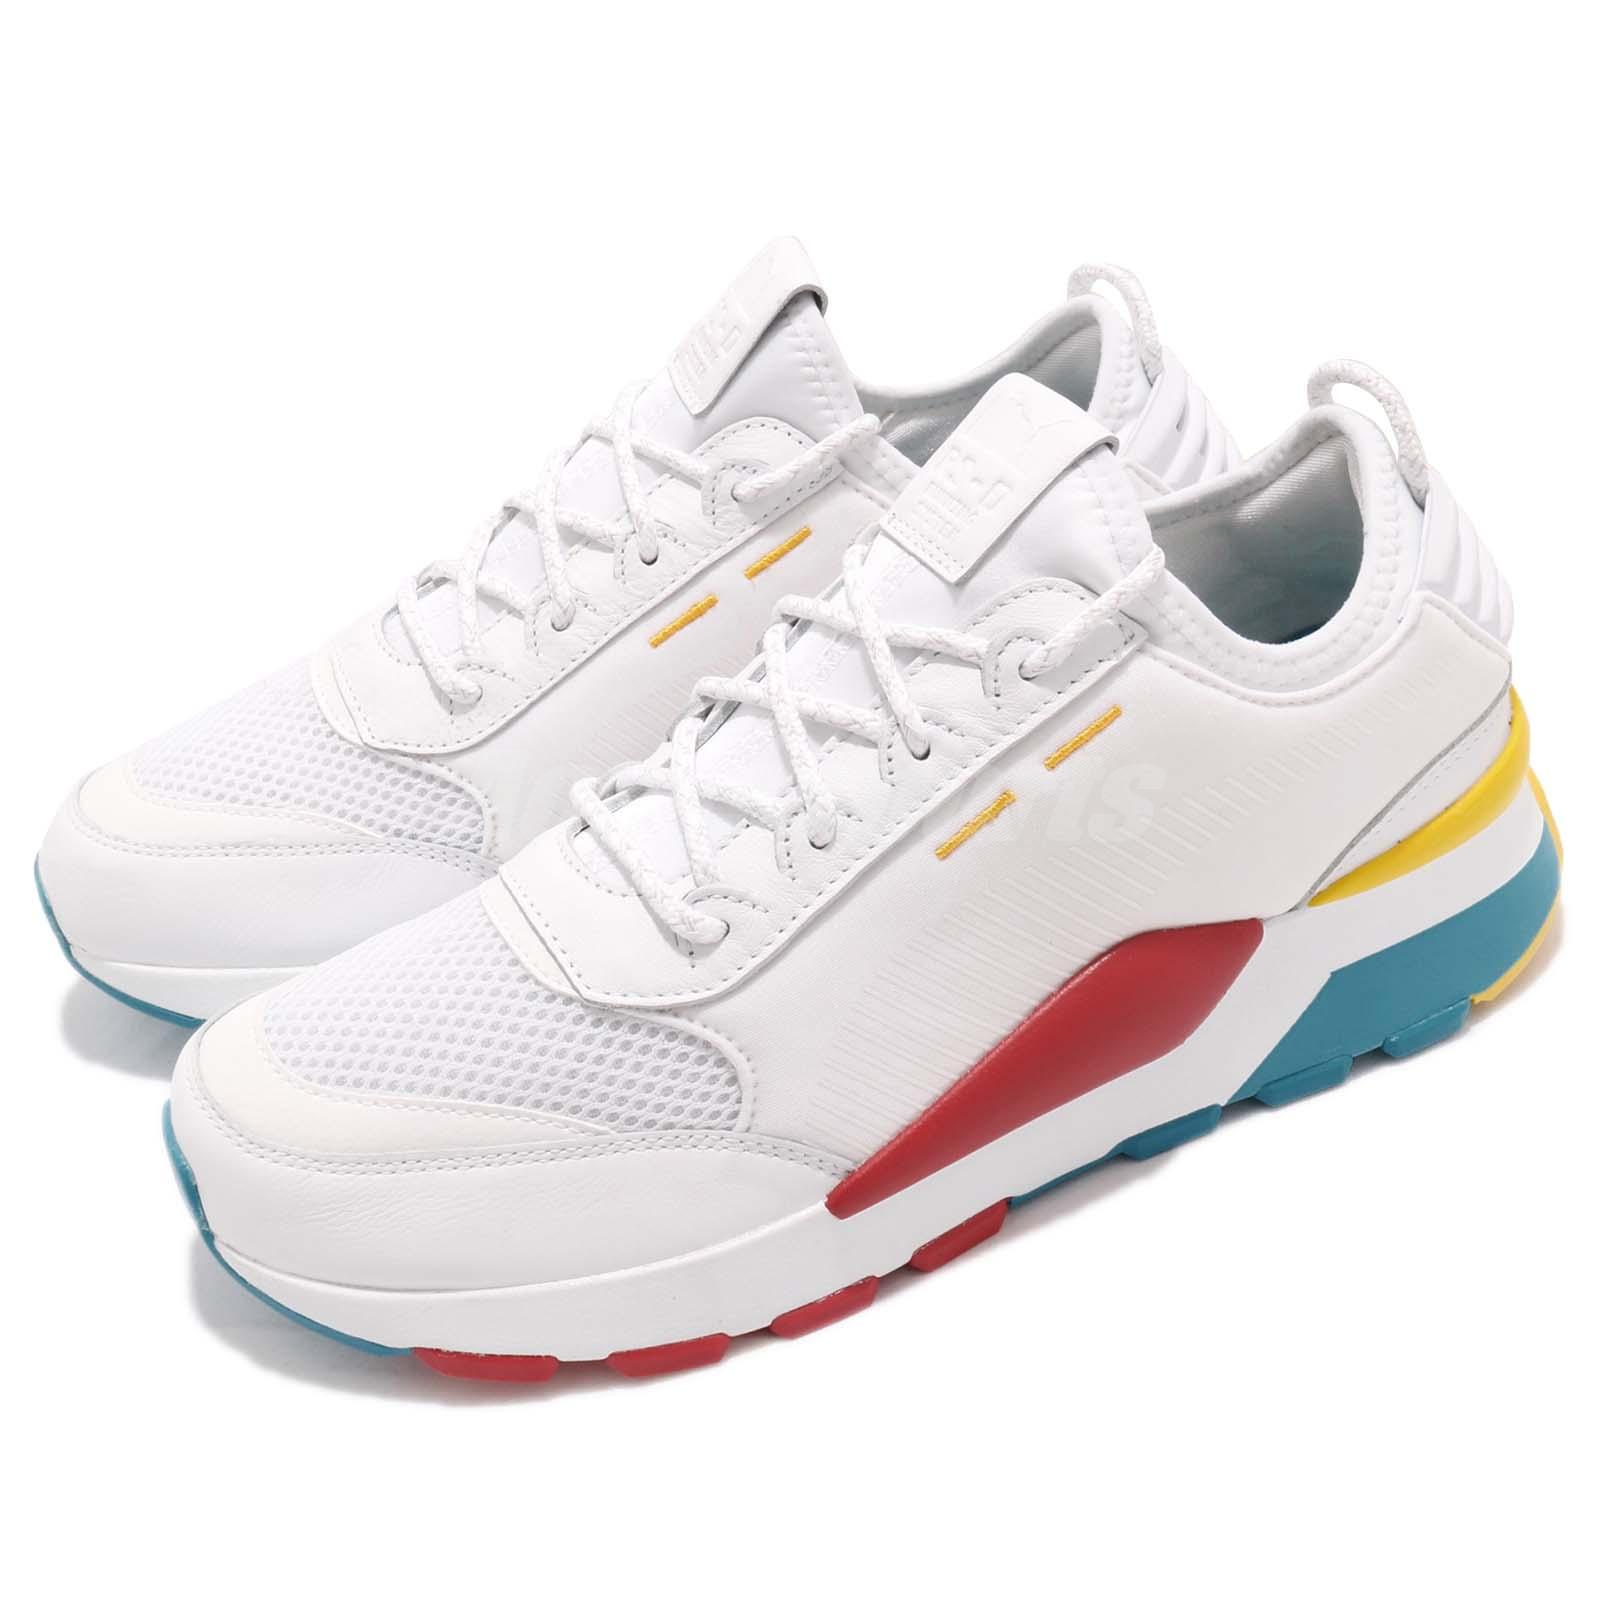 Puma RS 0 Play Running System White Hawaiian Ocean Dandelion Men Shoes 367515 01